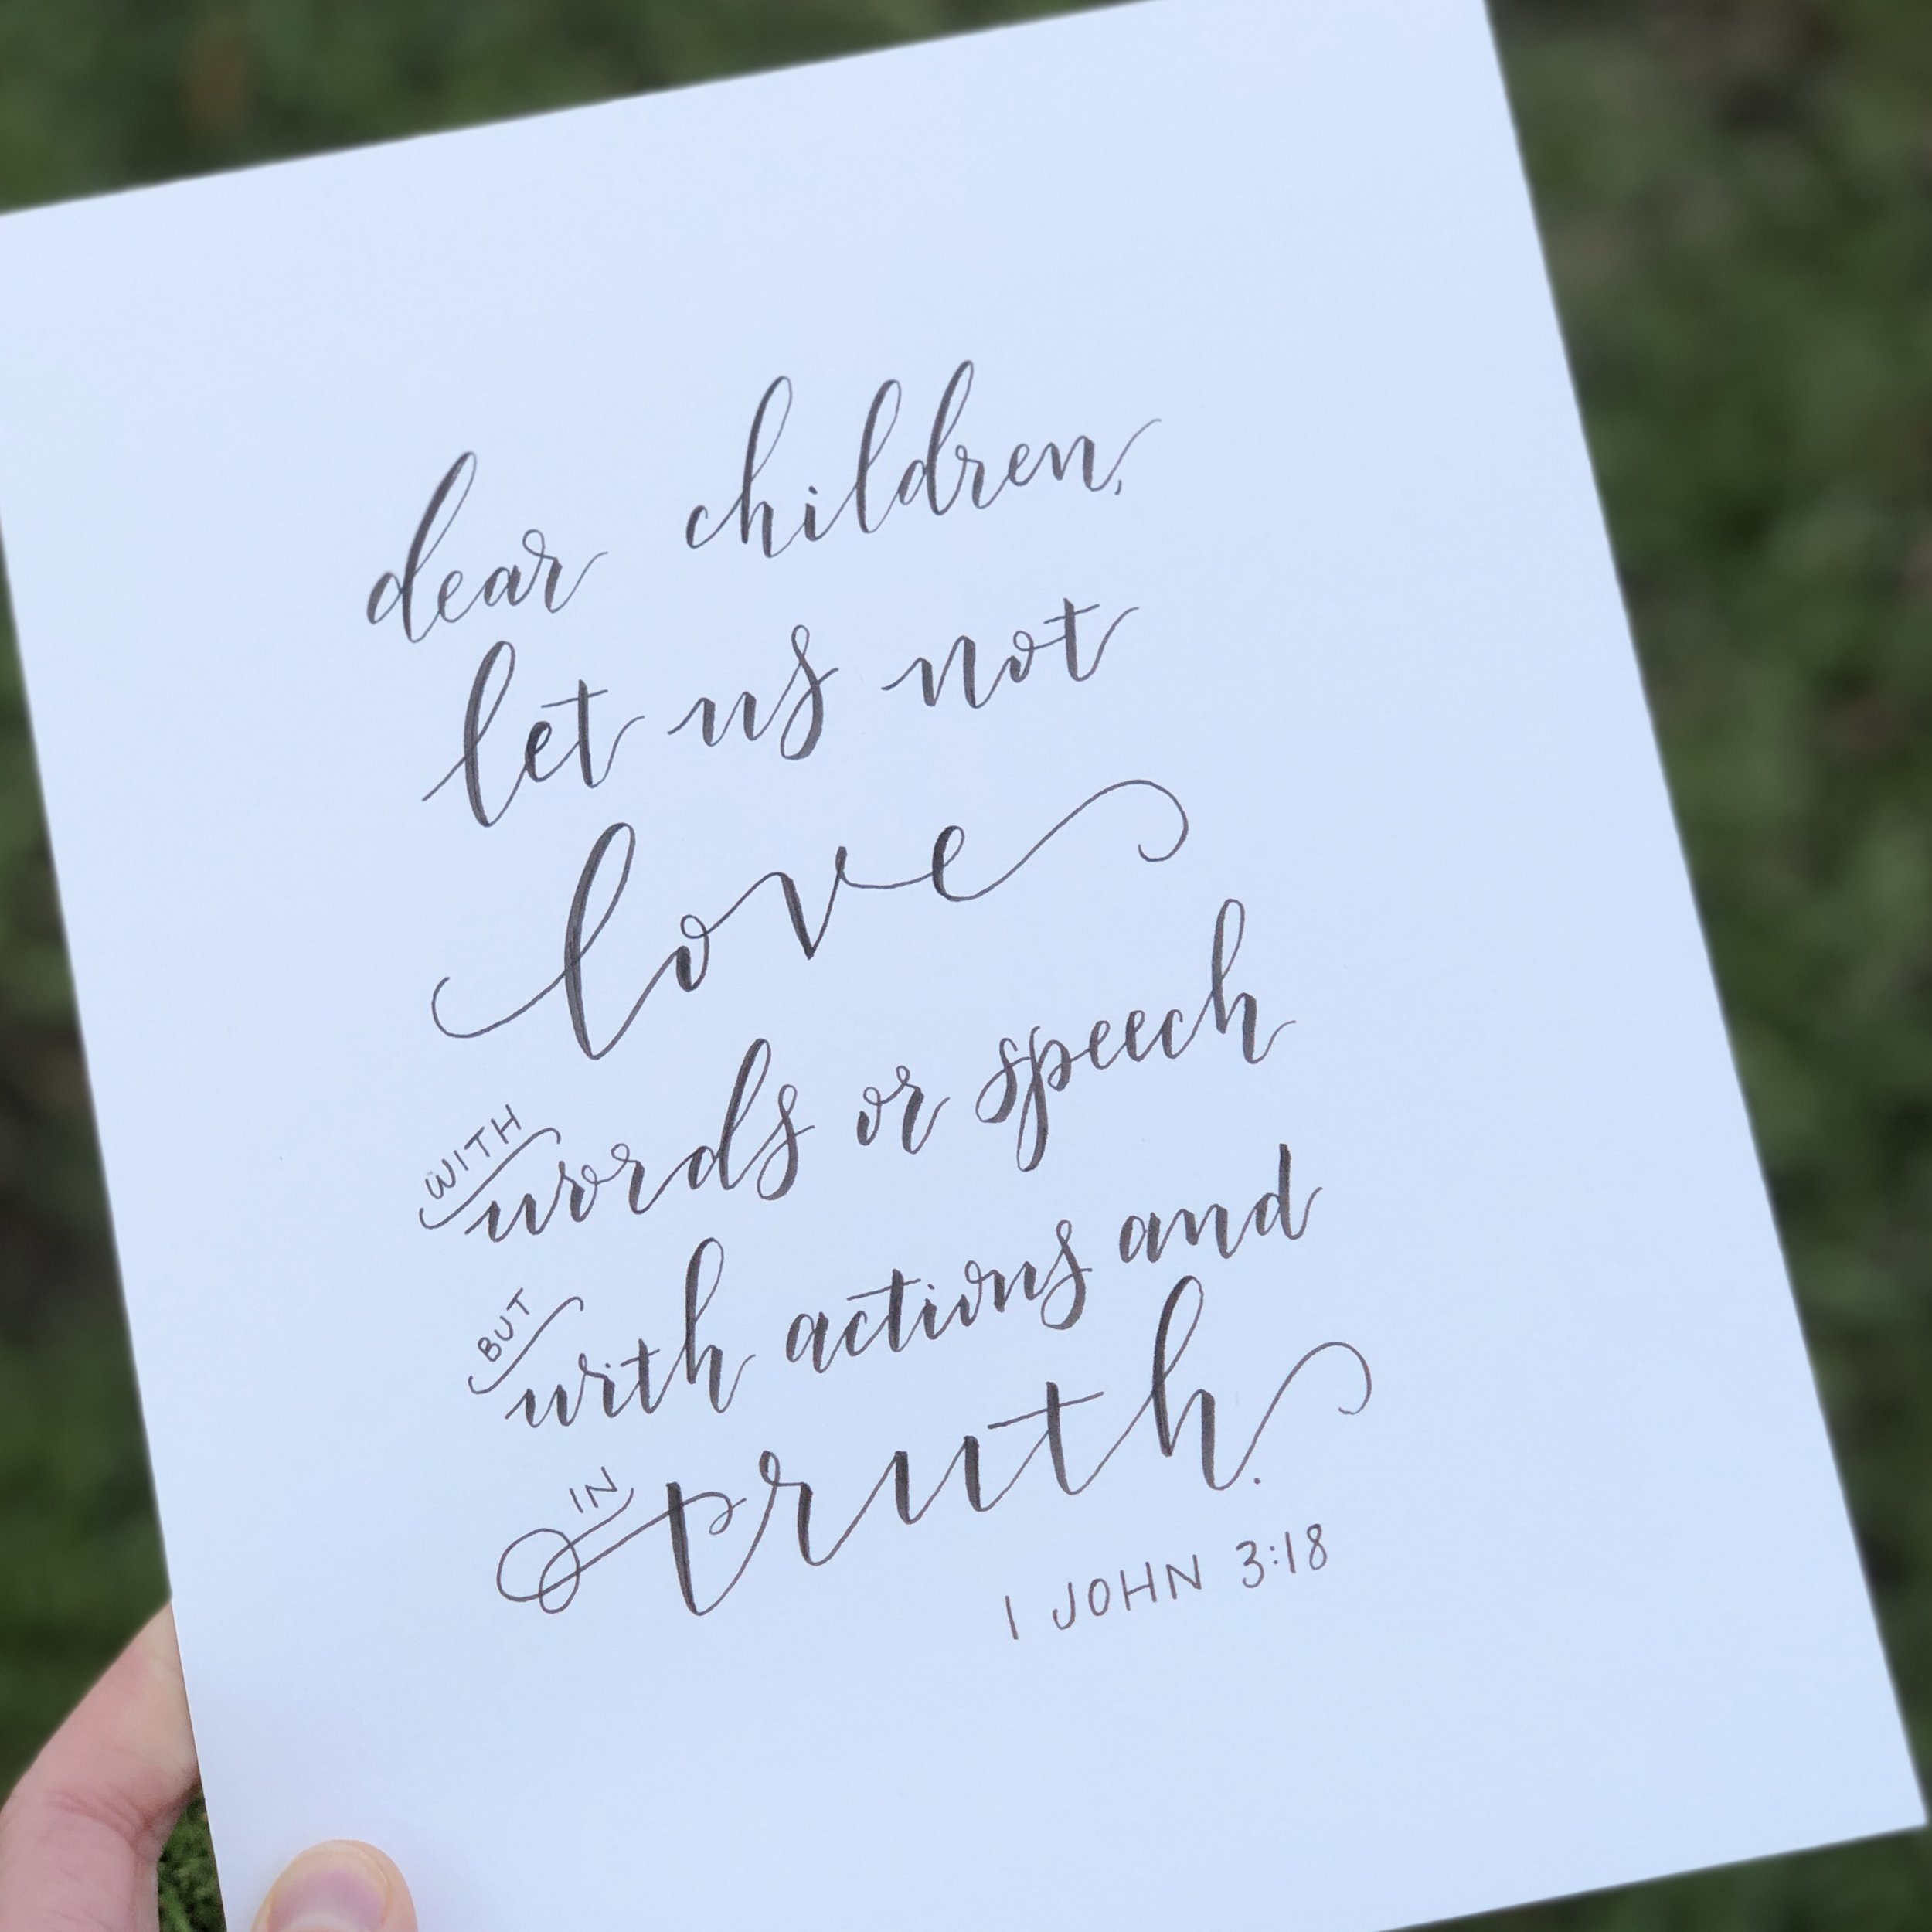 dear children let us not love with words or speech but in actions and in truth